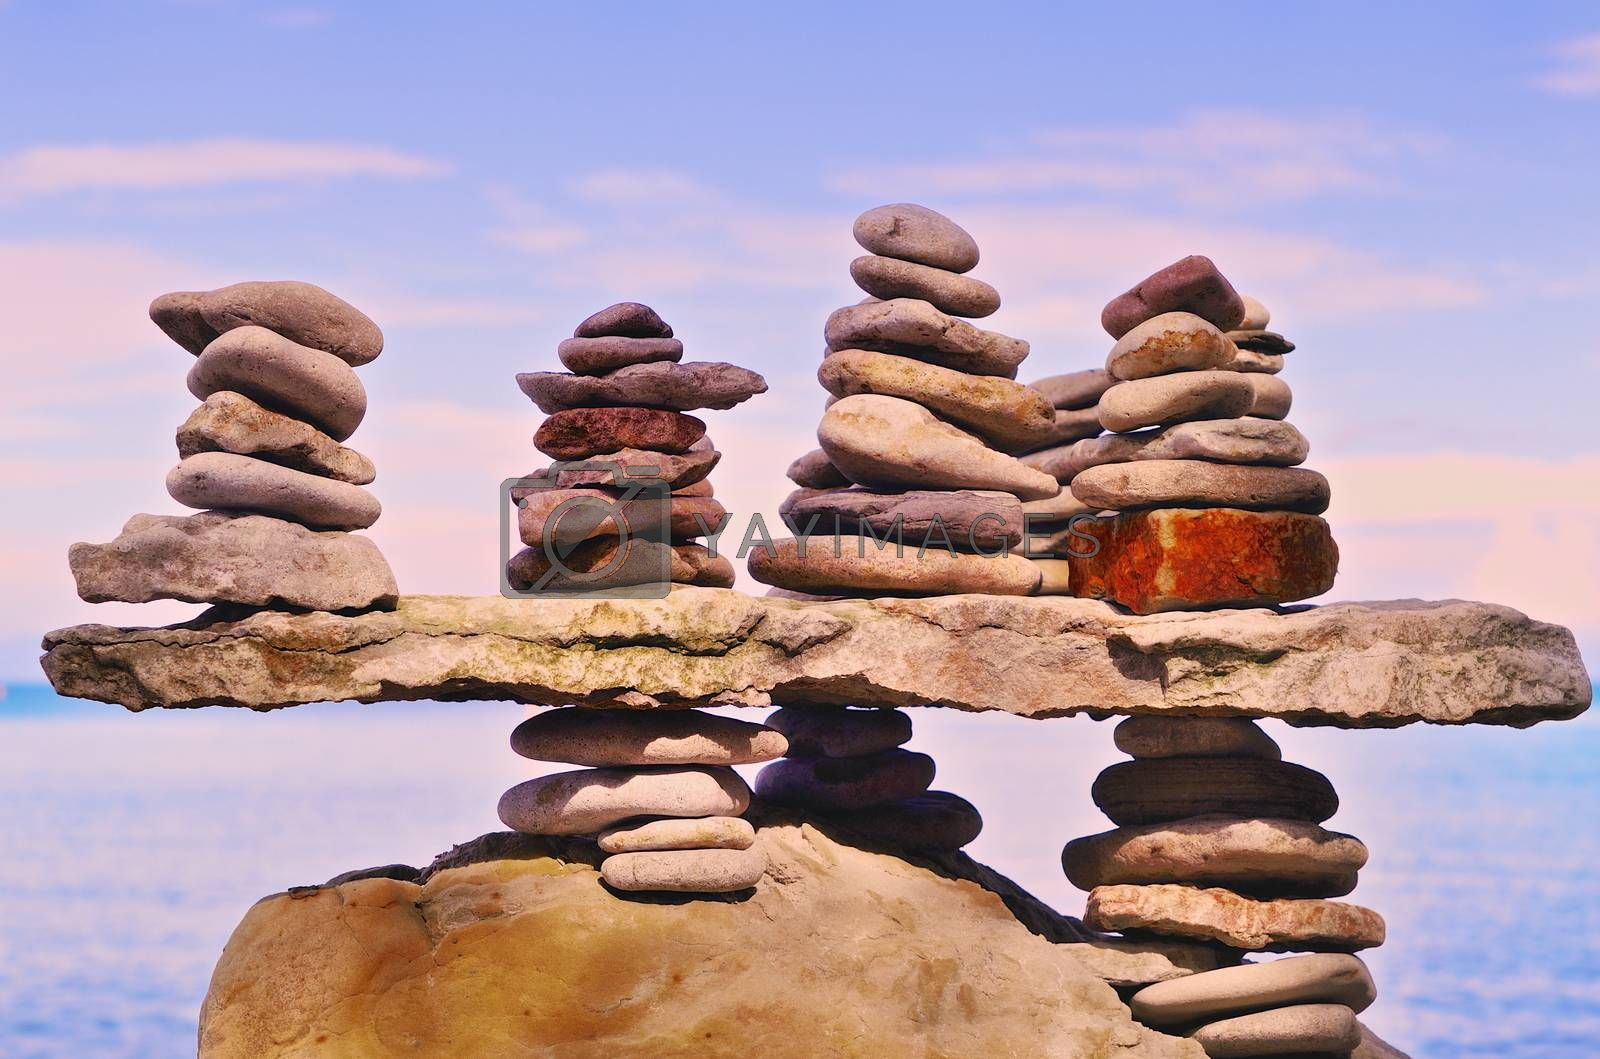 Royalty free image of Pebbles on a top of boulder by styf22